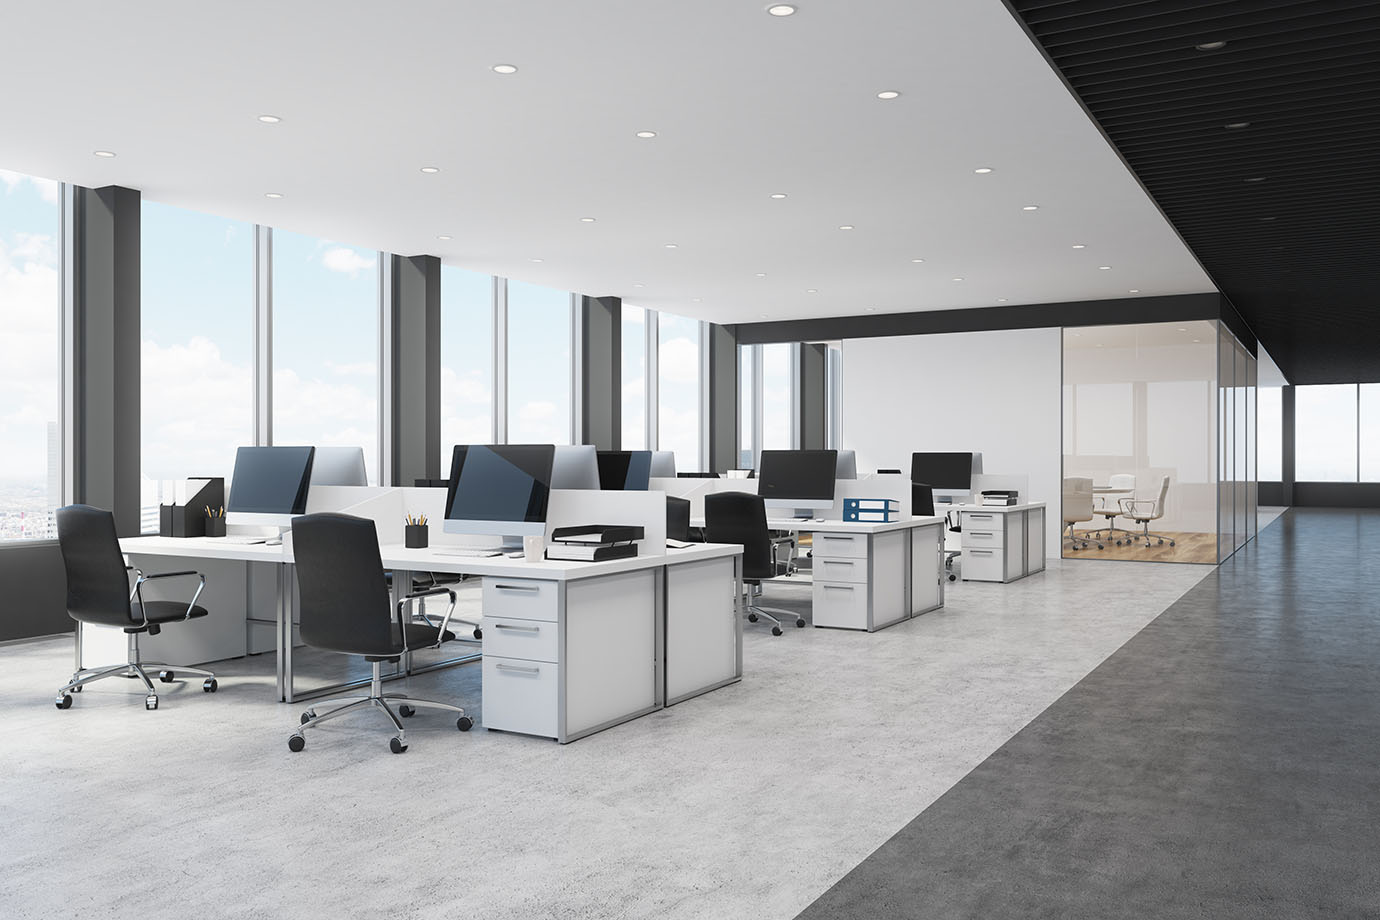 Commercial cleaning services in Sudbury, ON